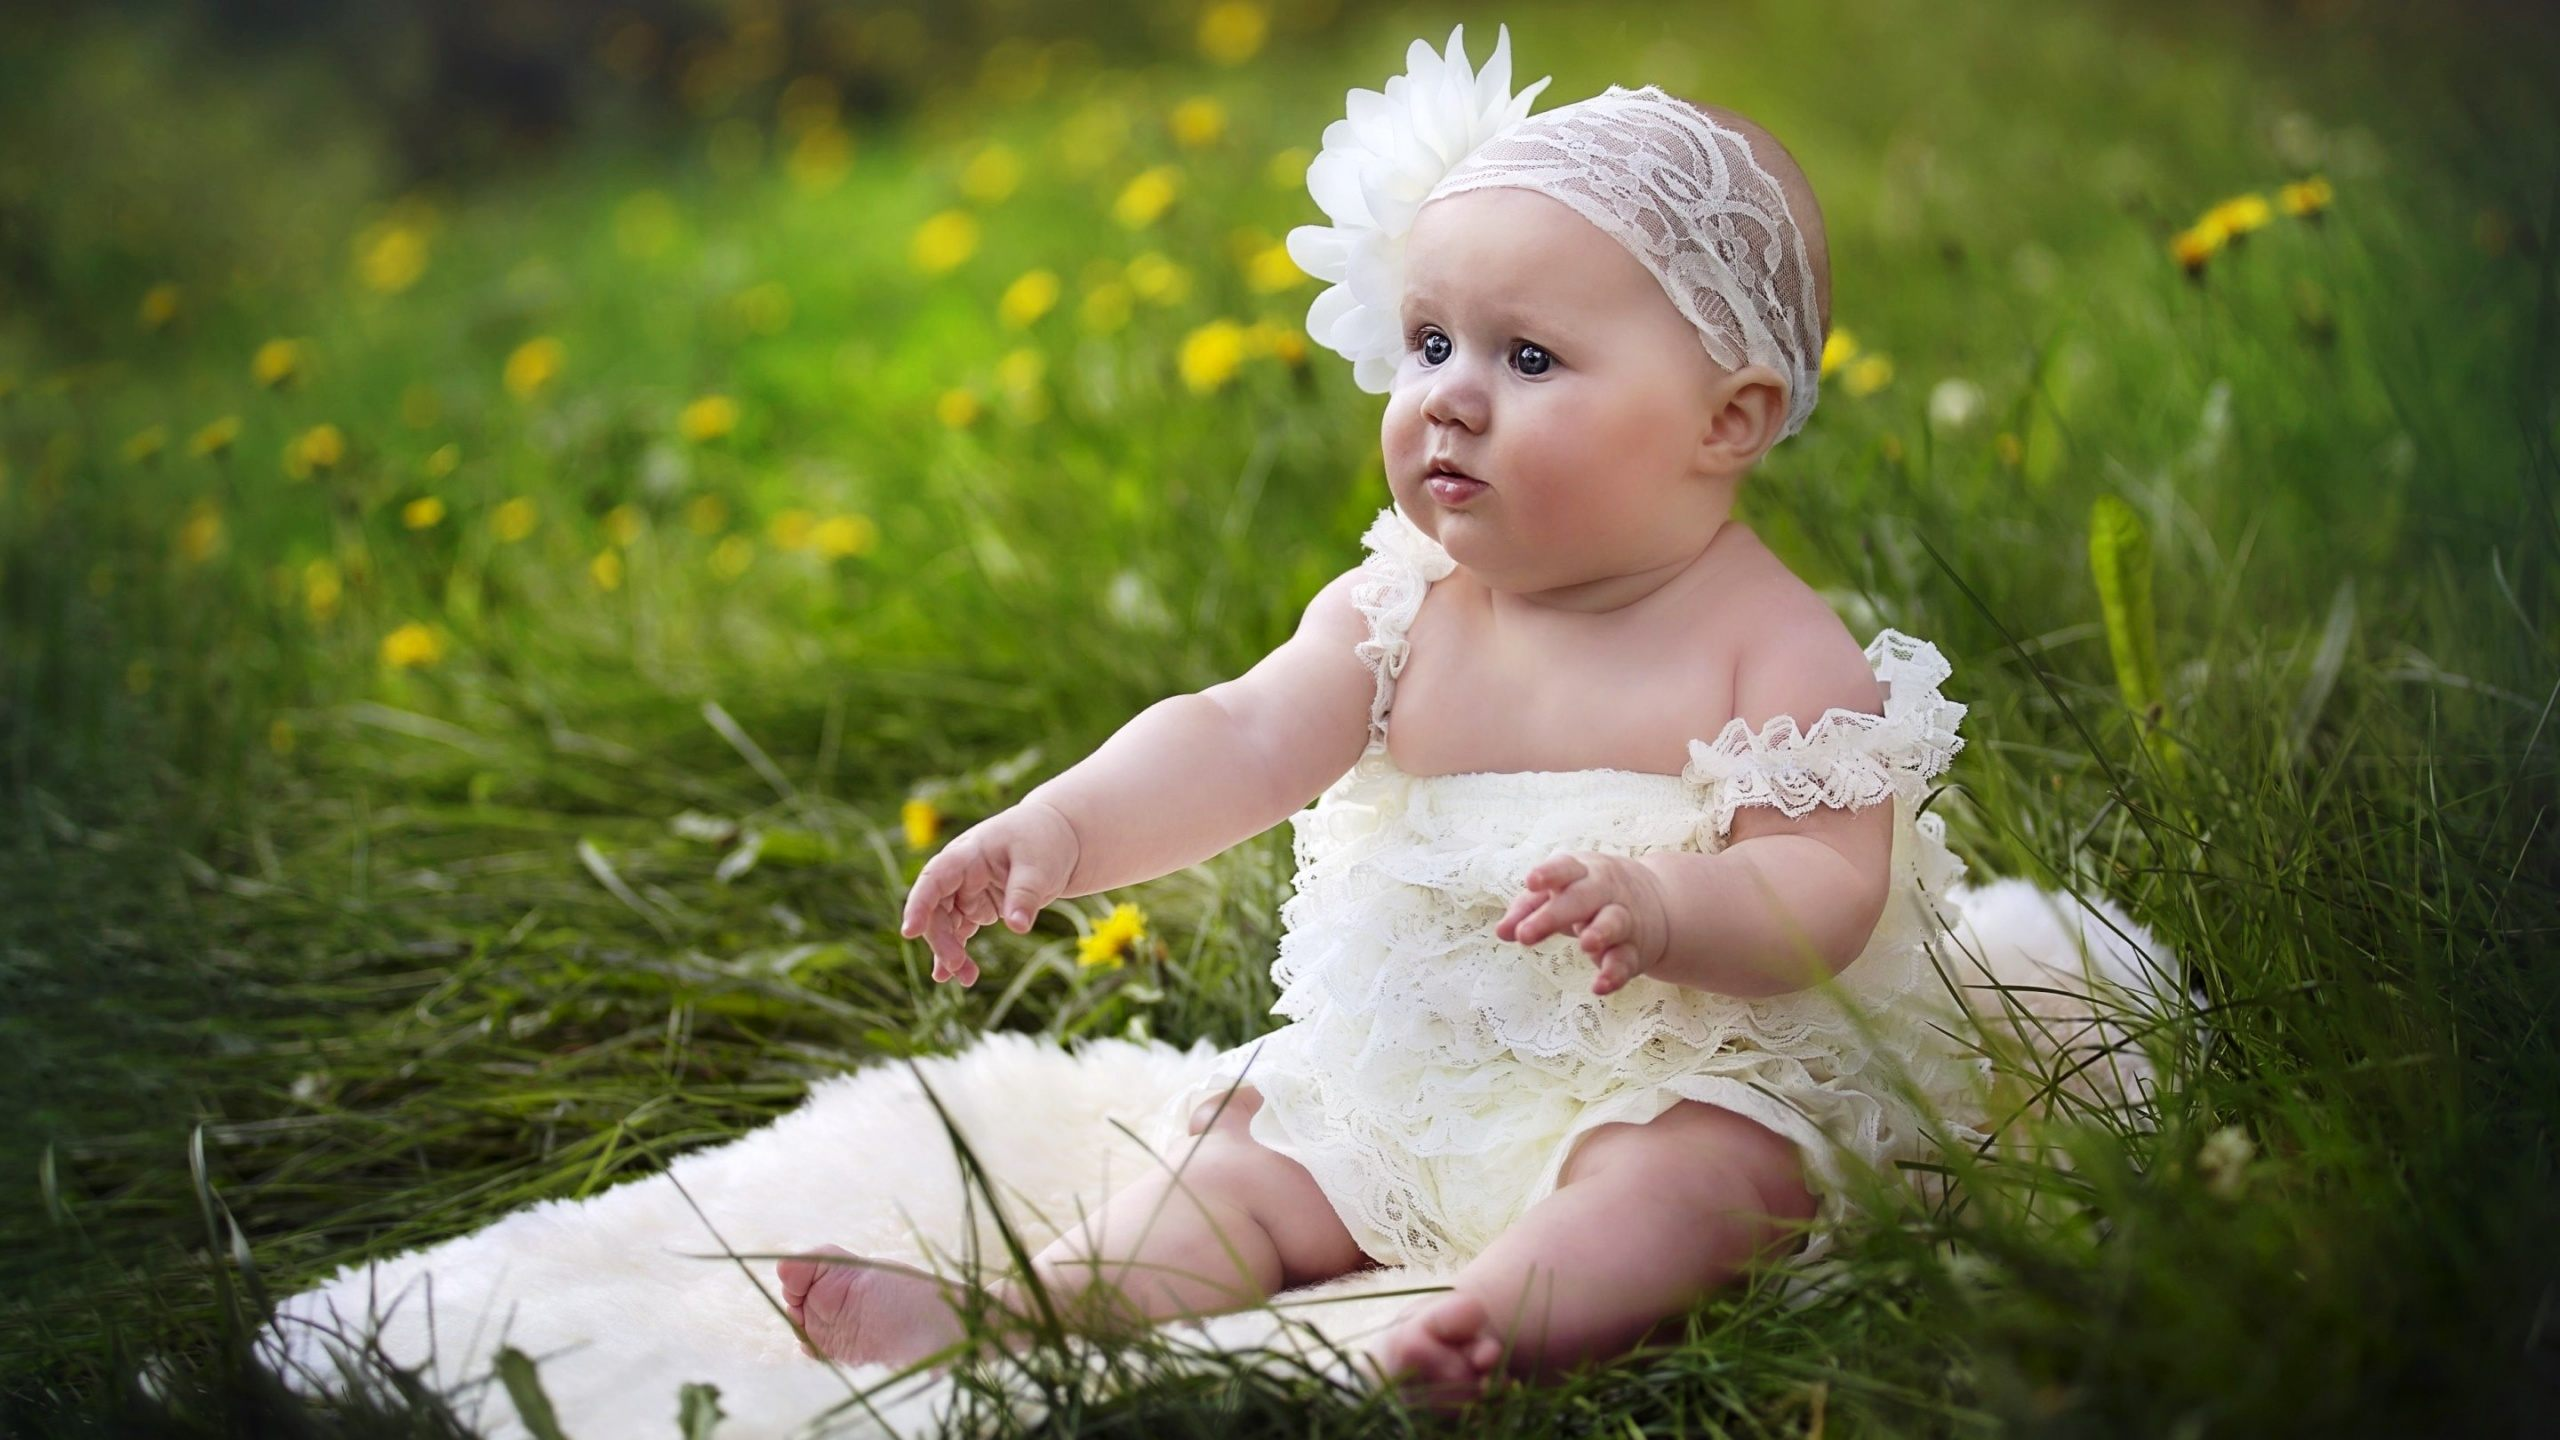 Cute Girl Wallpaper For Facebook Profile Sweet Babies Wallpapers Group 70